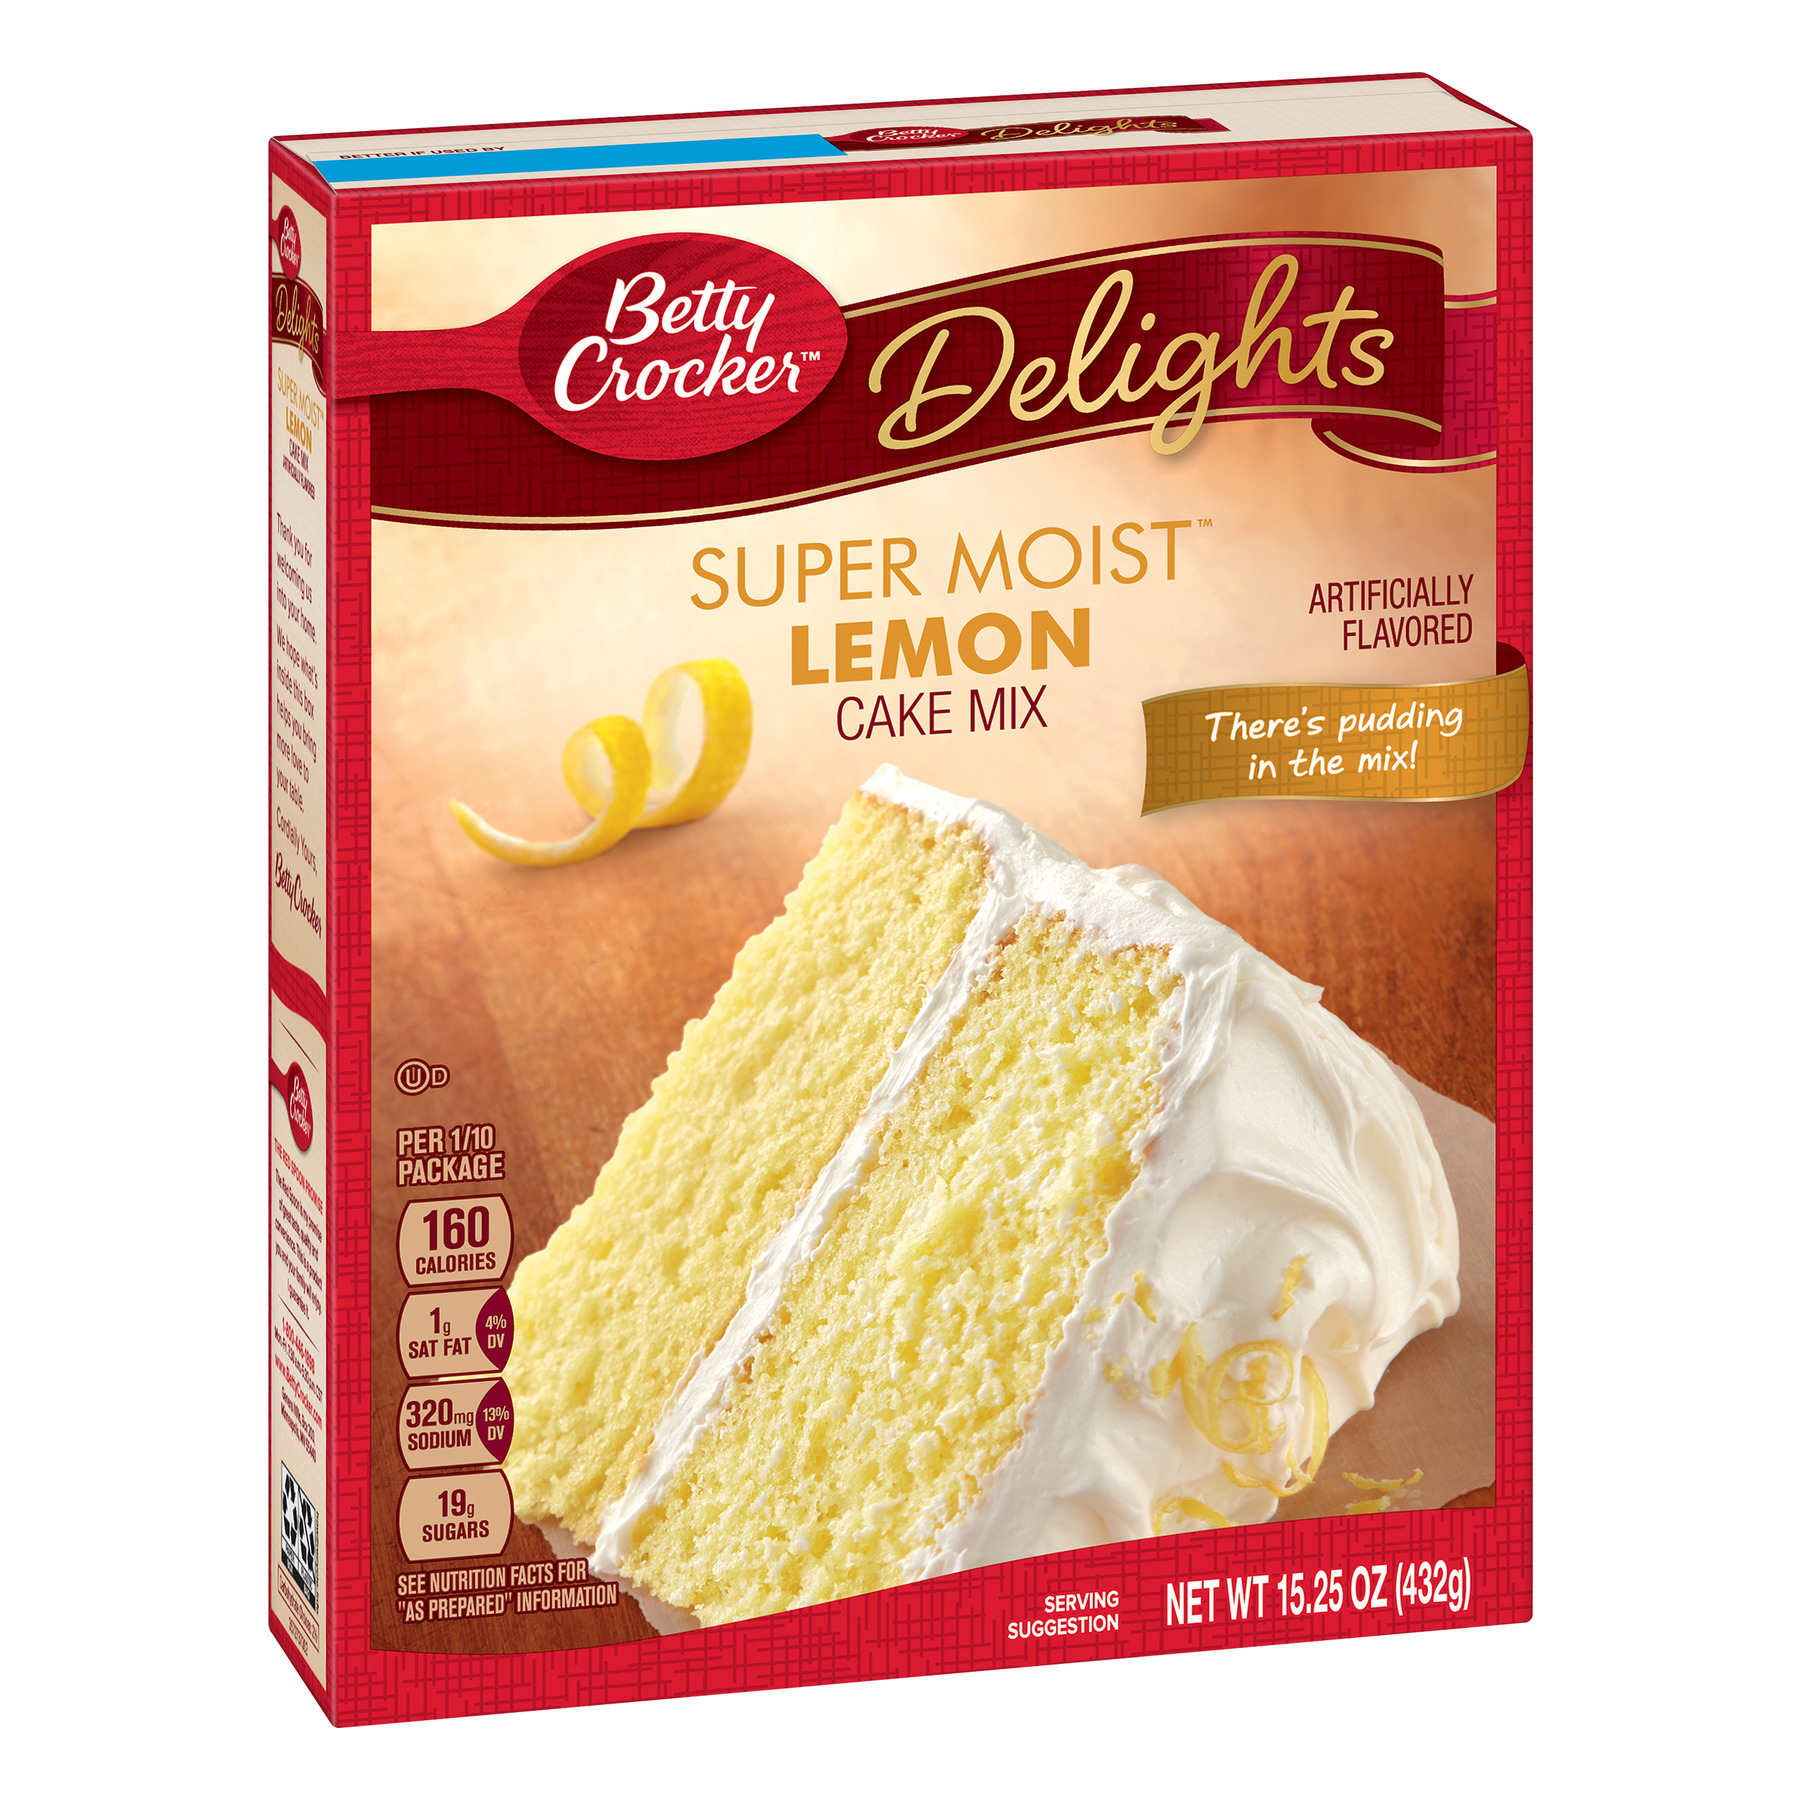 (12 Pack) Betty Crocker Baking Mix, Super Moist Cake Mix, Lemon, 15.25 Oz Box